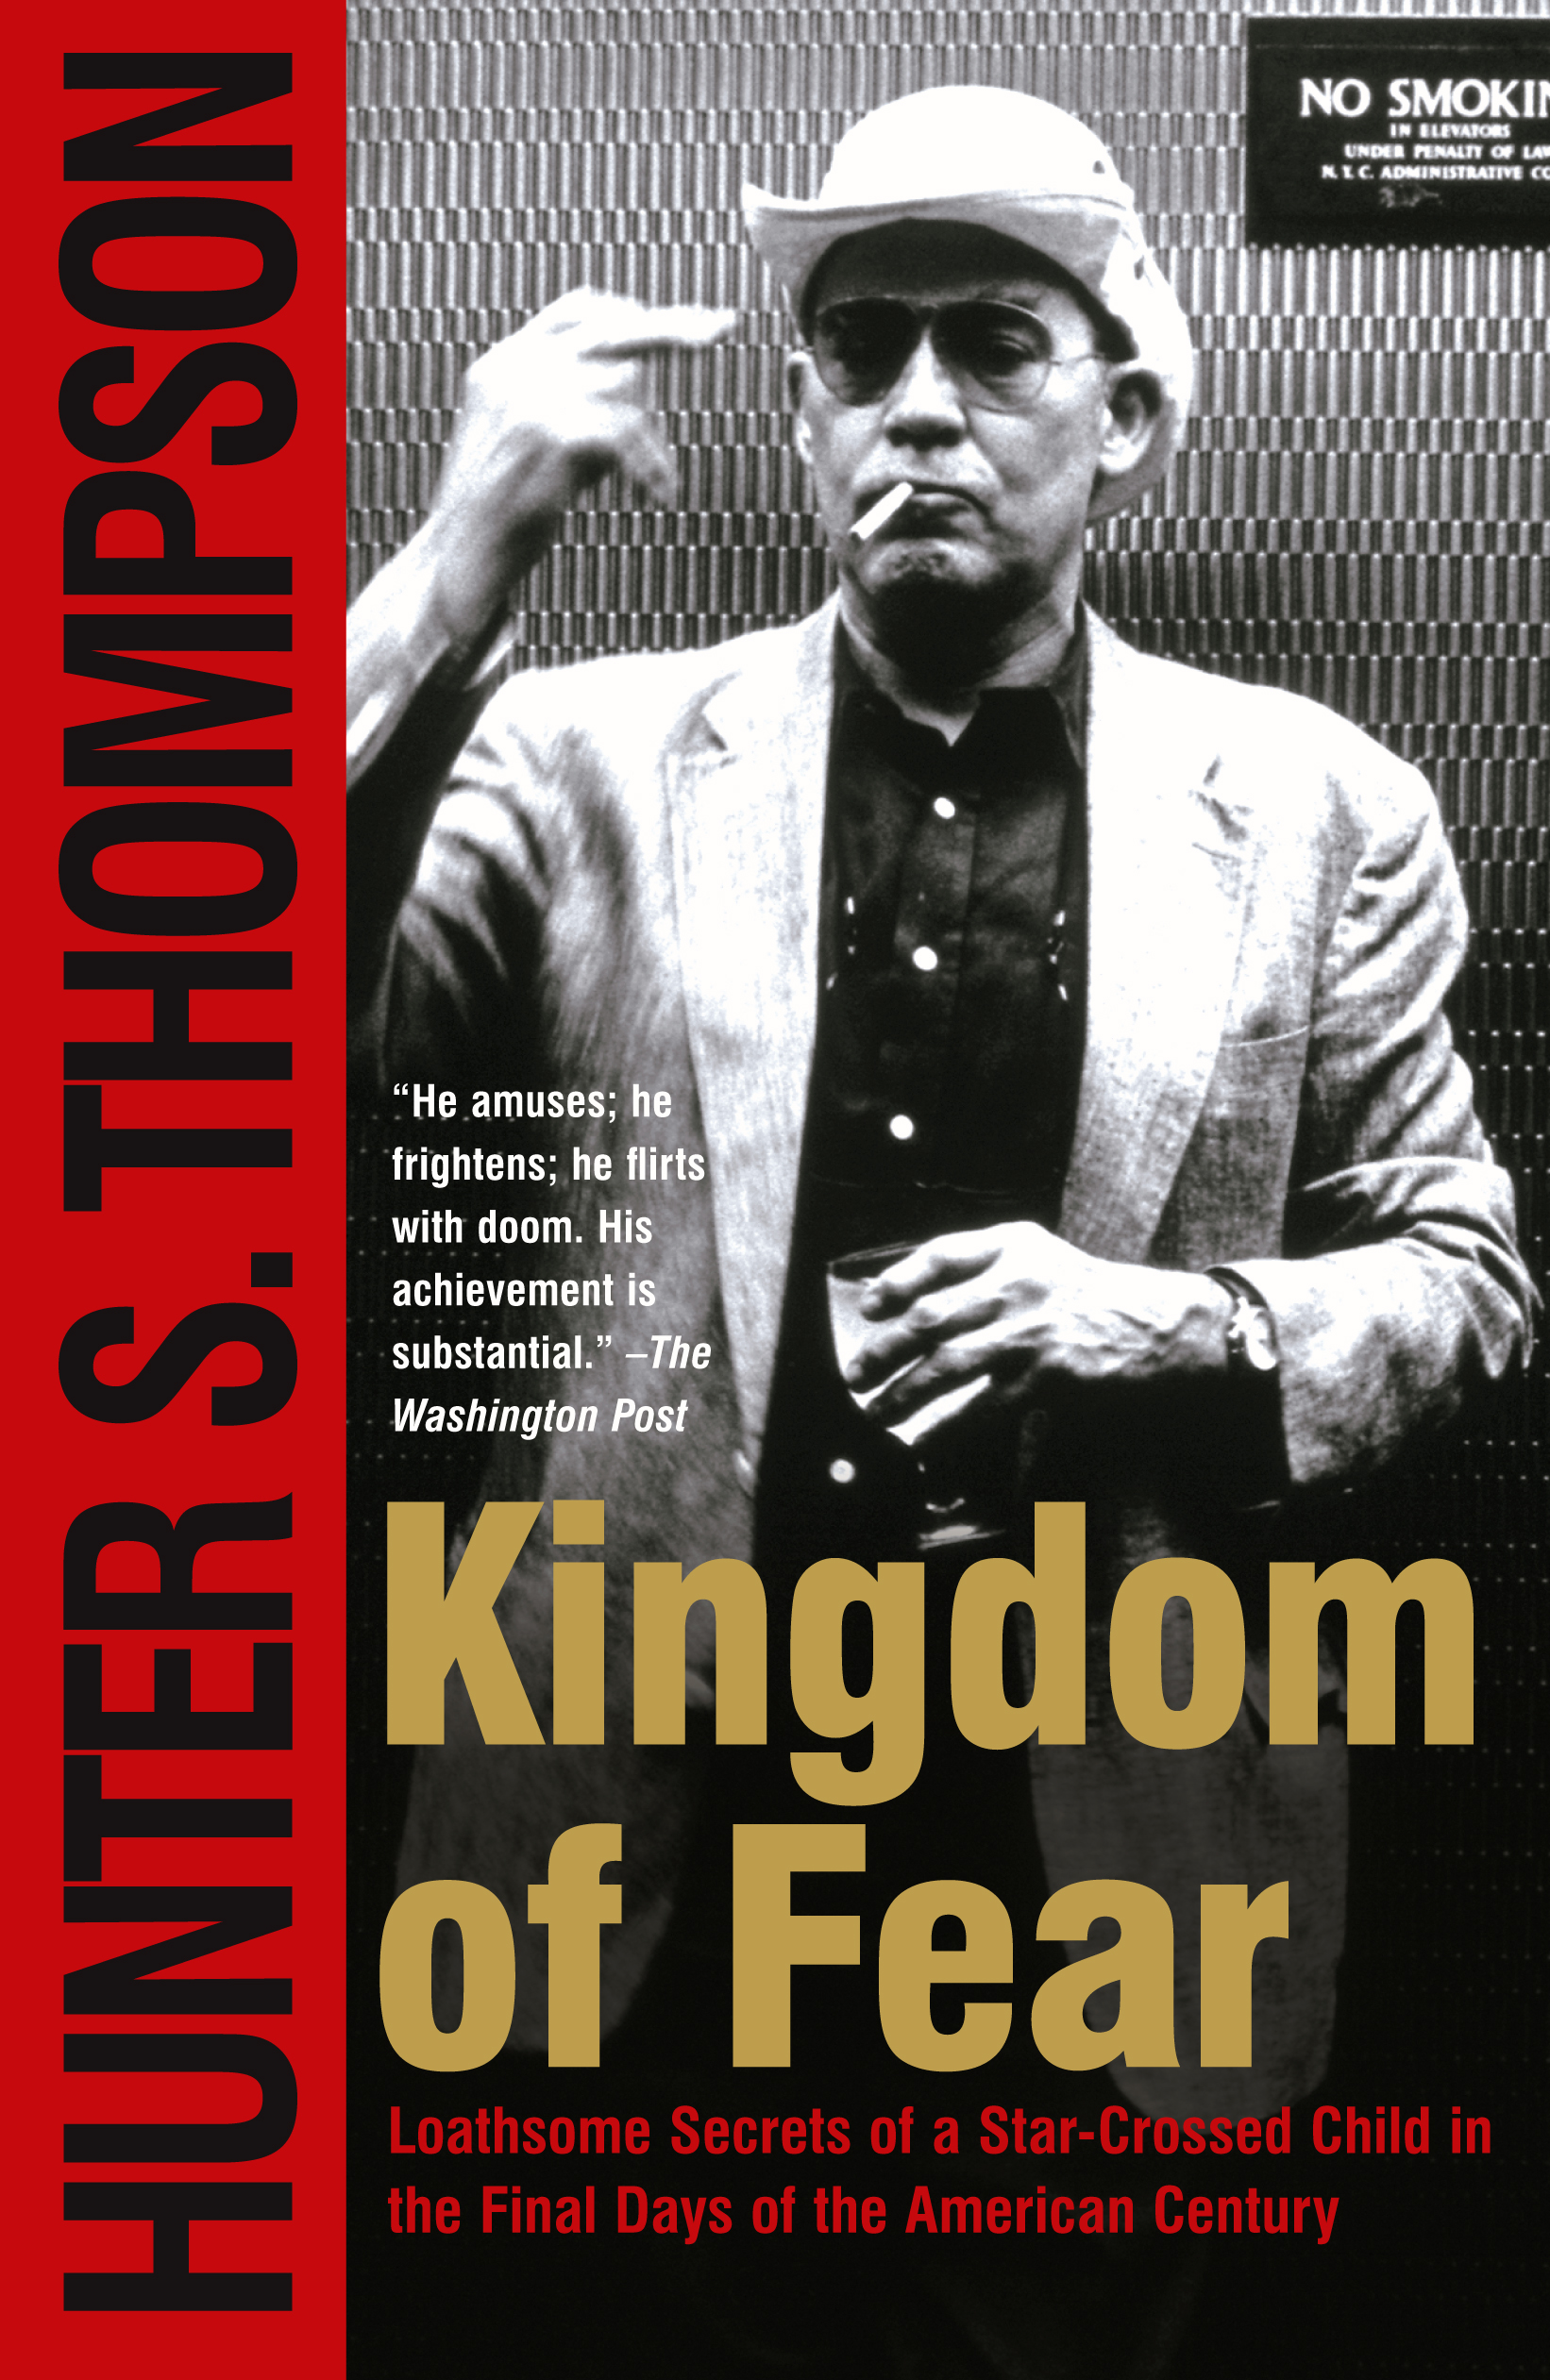 Kingdom of fear book by hunter s thompson official publisher book cover image jpg kingdom of fear madrichimfo Choice Image